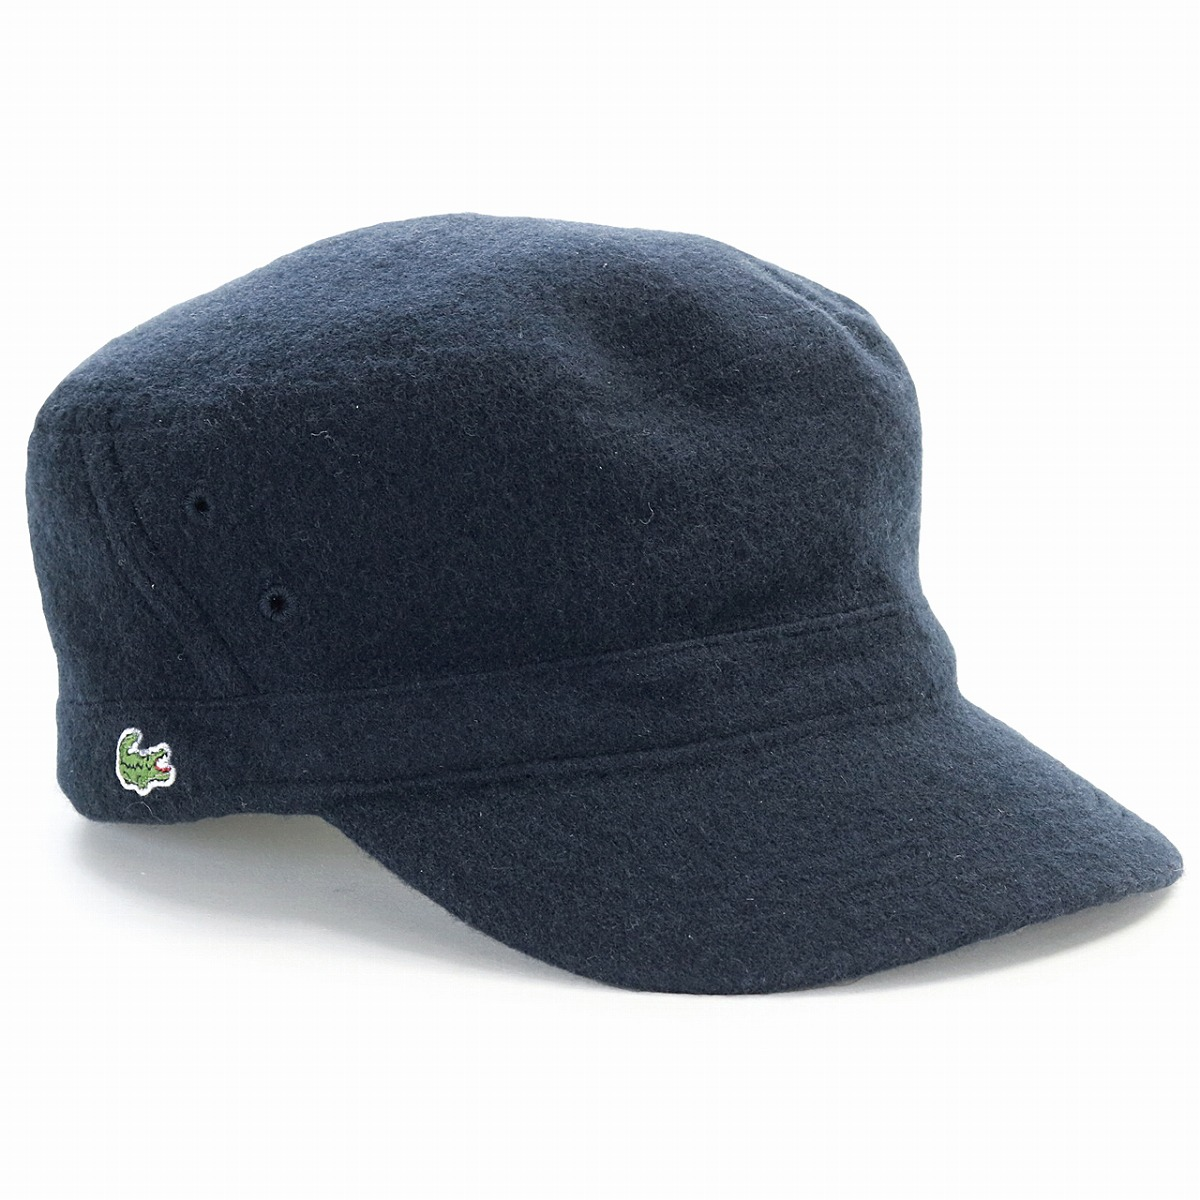 Shin pull adult casual sports fashion cap 56 5cm 58cm 59 5cm / dark blue  navy [cadet cap] gift present made in work cap men Lacoste cap embroidery